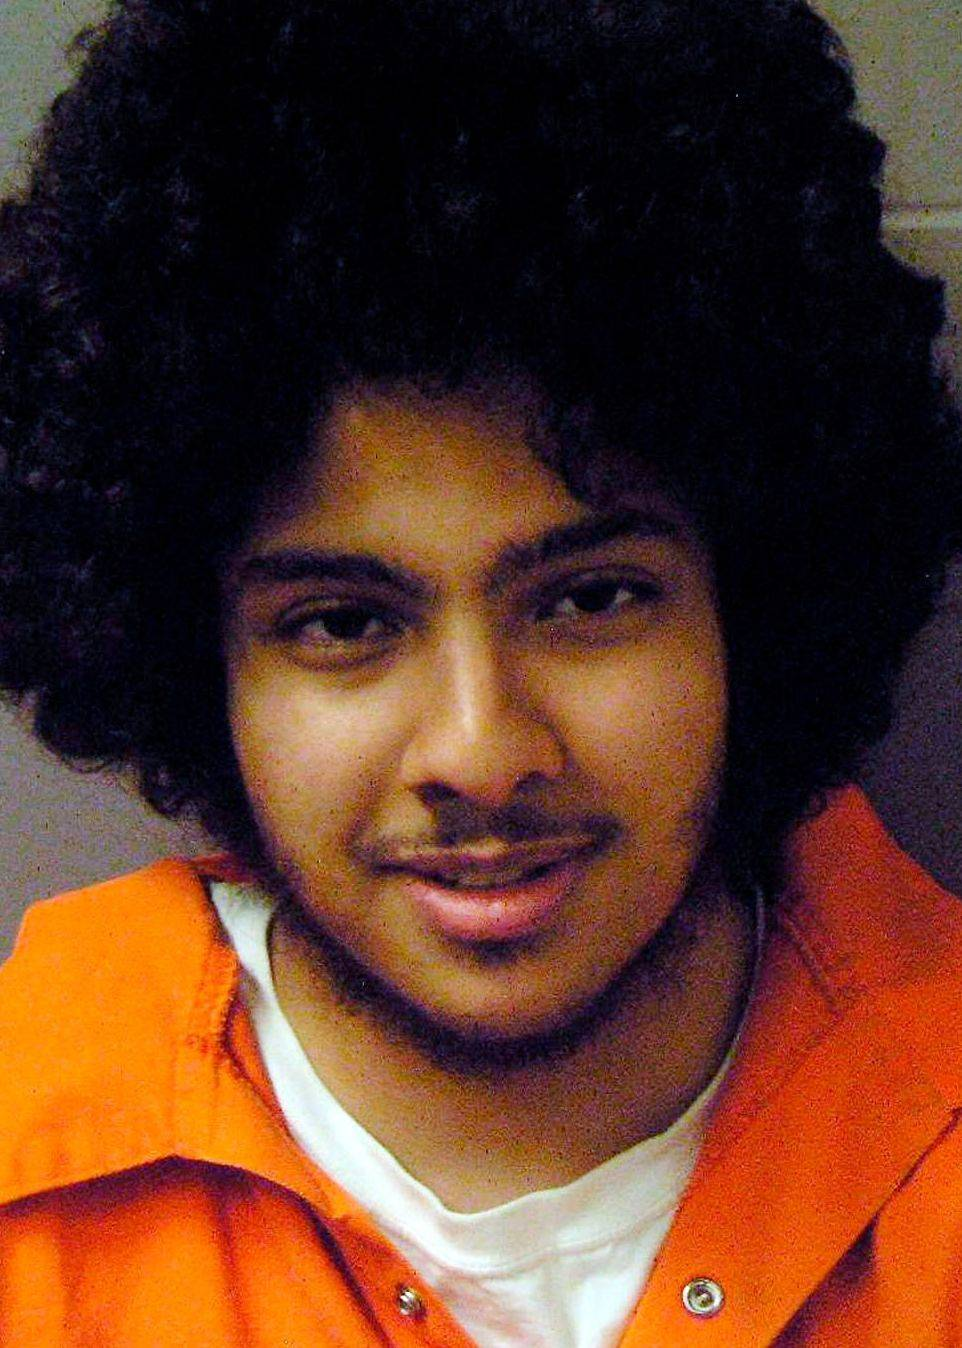 Judge undoes ruling on surveillance evidence in Chicago terror case